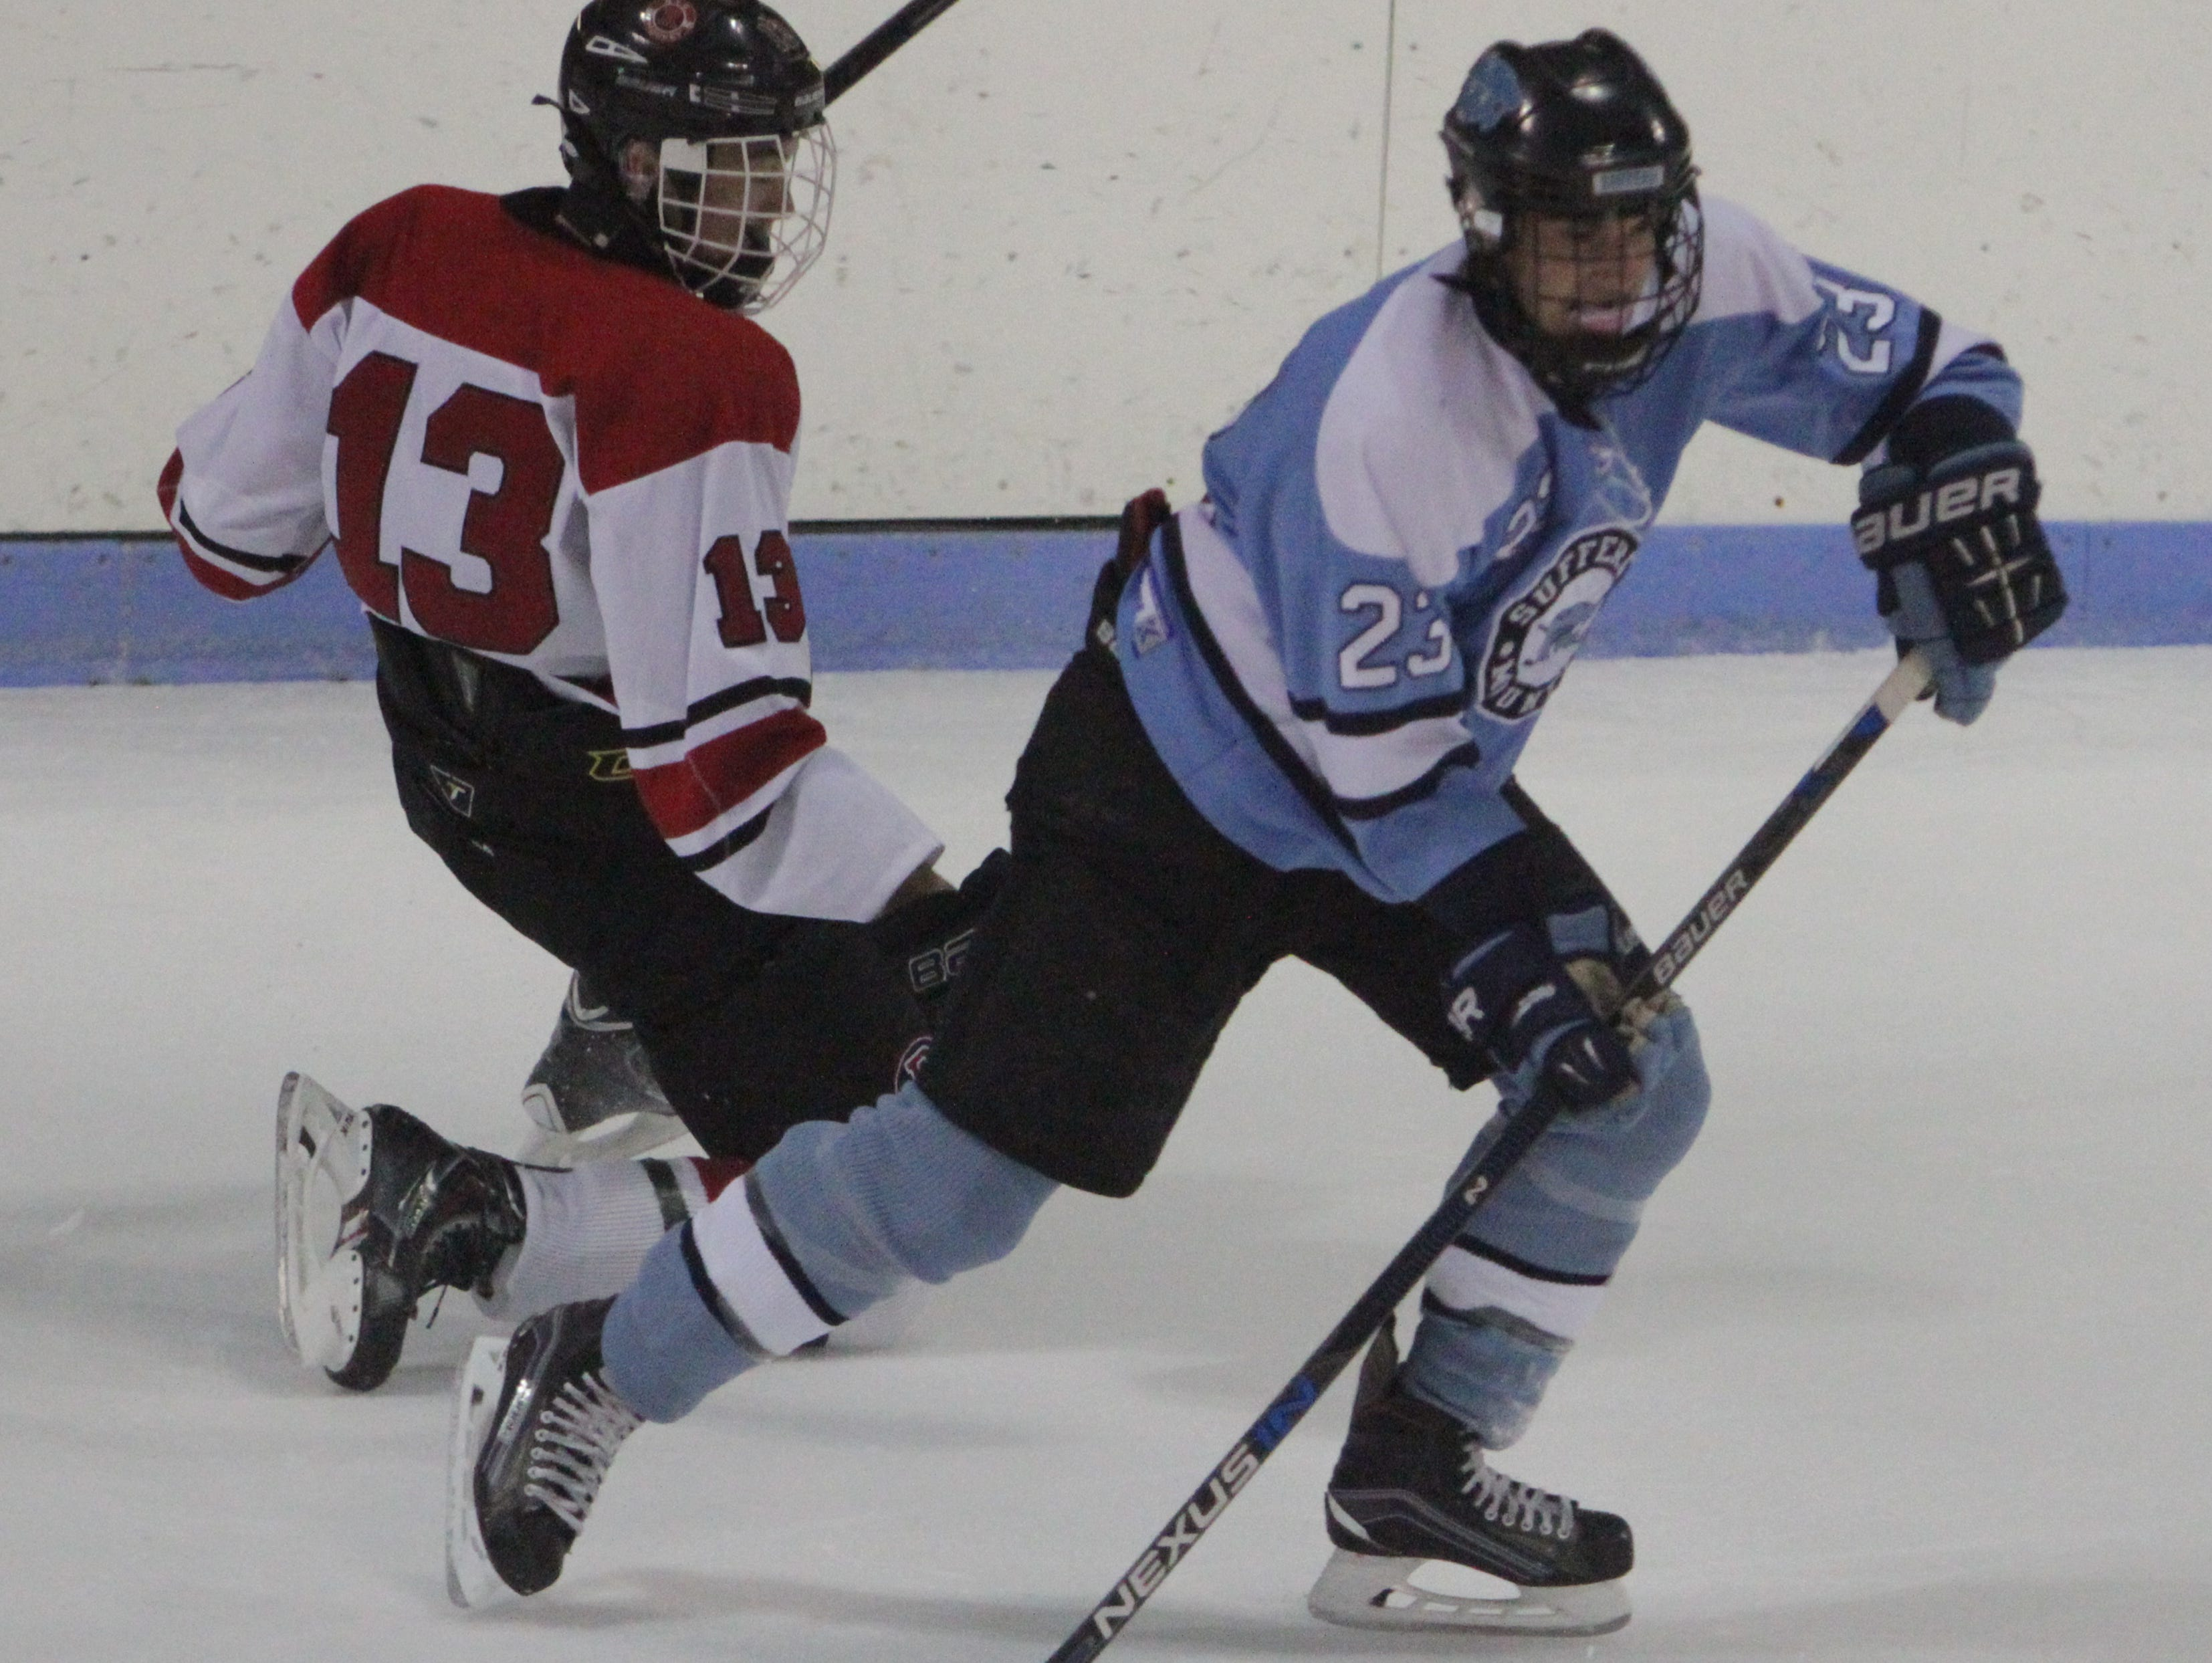 Suffern's CJ Greco goes around Rye's Guy Junkins during a Section 1 hockey game at the Playland Ice Casino in Rye on Wednesday, January 8th, 2016. Suffern won 3-2.